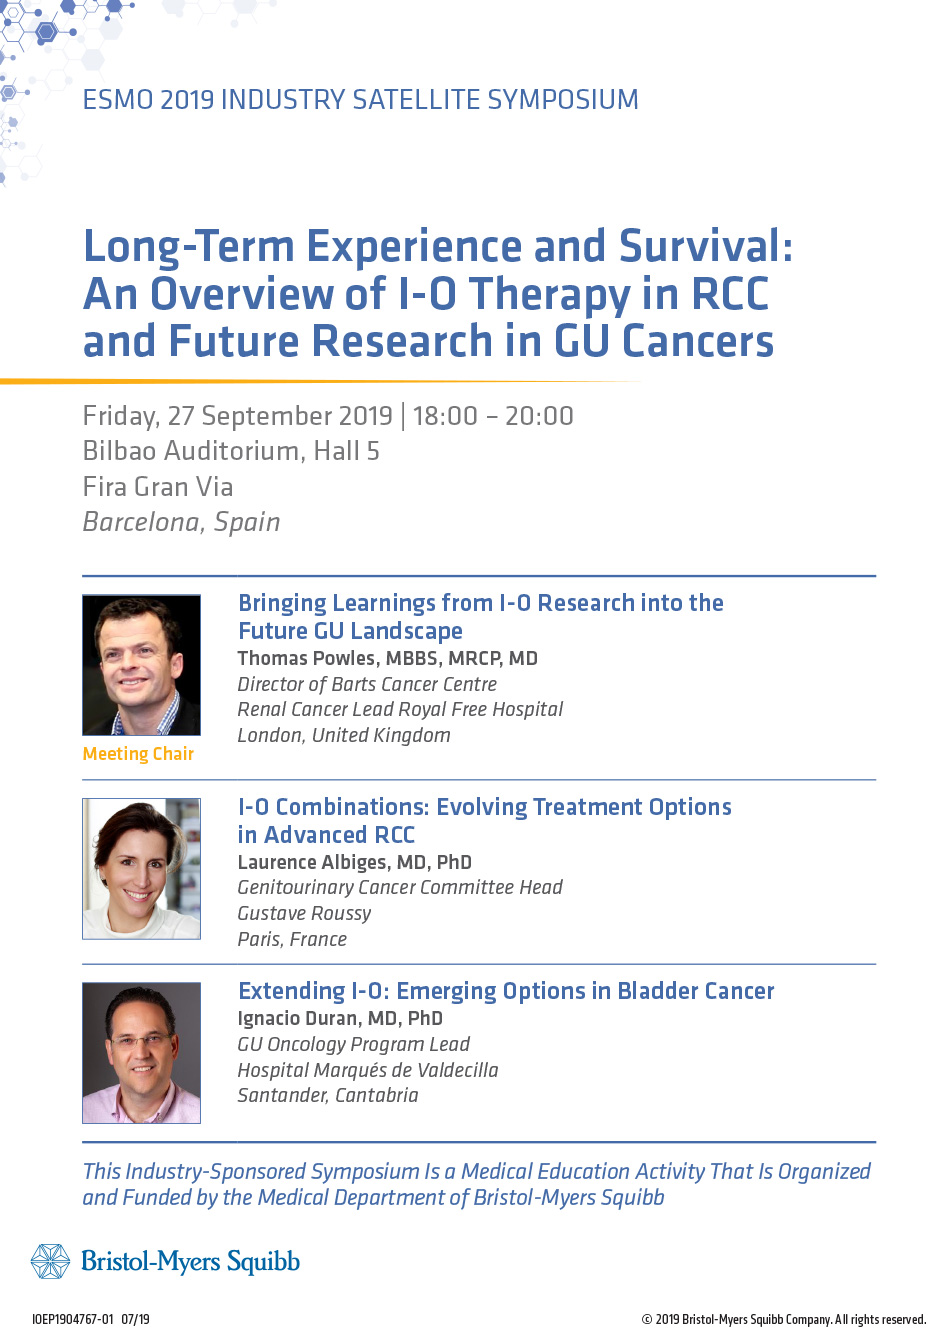 04-Long-Term-Experience-and-Survival-An-Overview-of-I-O-Therapy-in-RCC-and-Future-Research-in-GU-Cancers-BMS